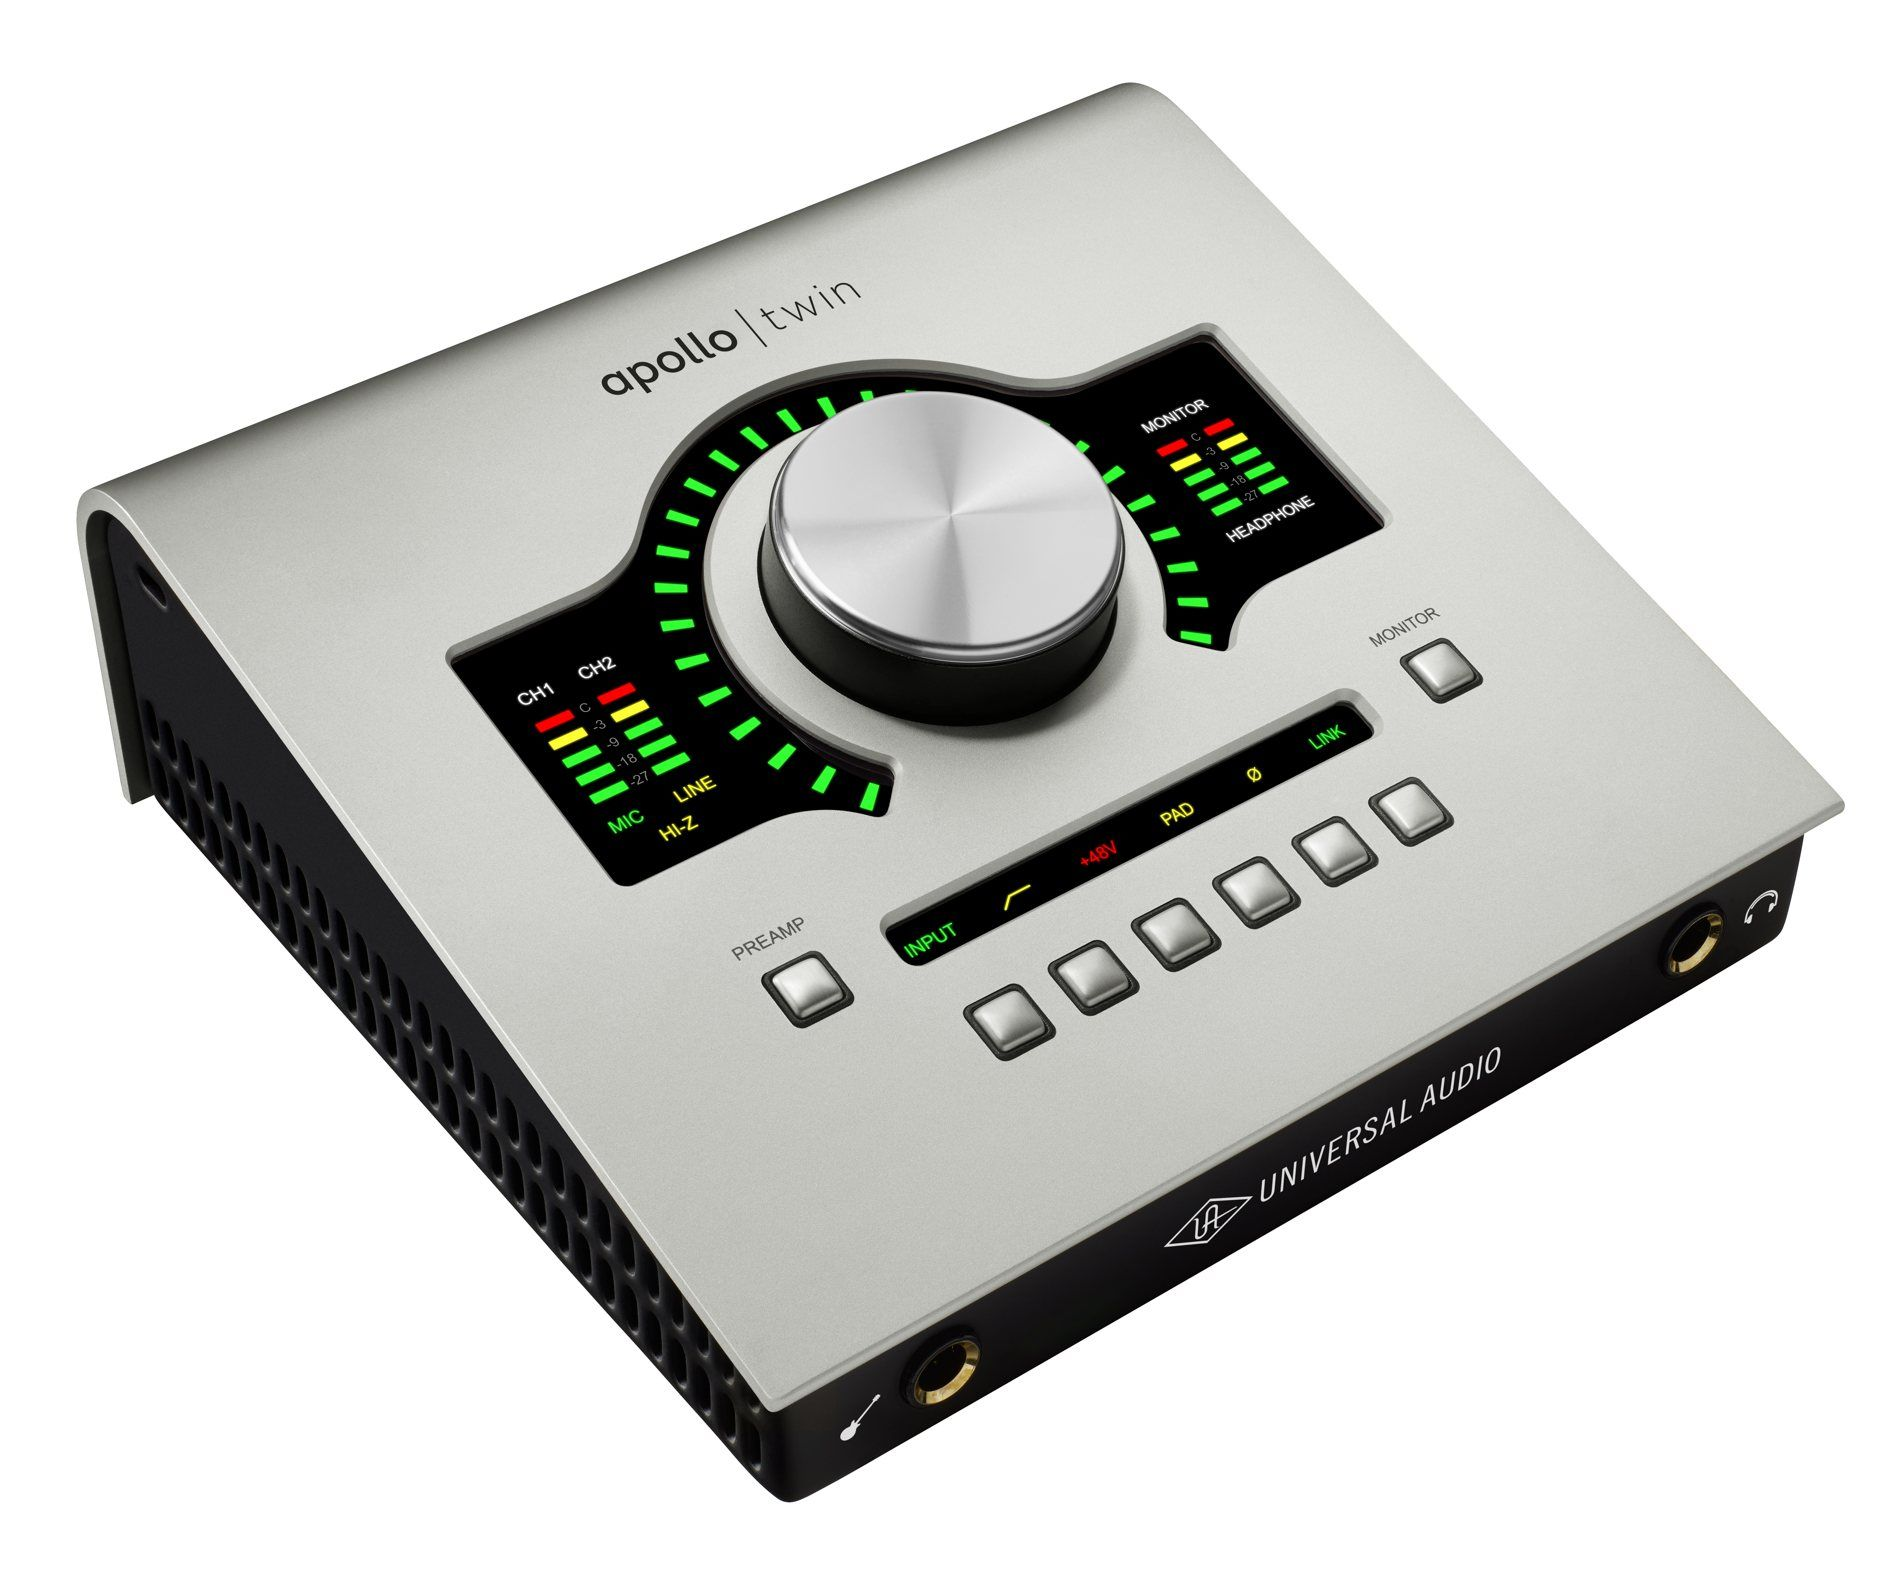 At the NAMM Universal Audio is showing off a new Apollo interface the Apollo Twin